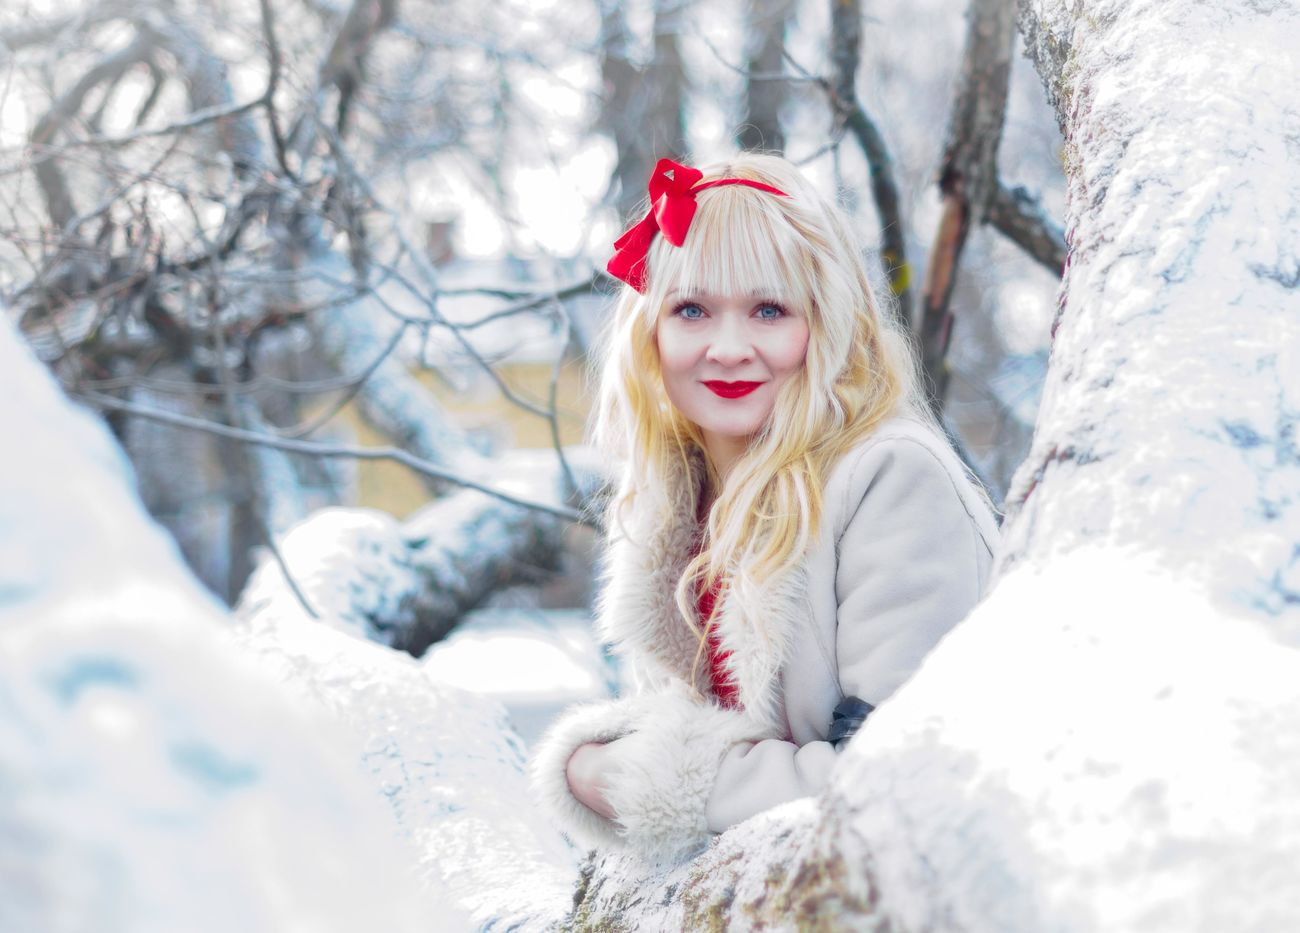 Winter Snow Portrait Beauty Tree Looking At Camera Blond Hair Park Bright Daylight Red Dress SmilePortrait Photography Location Shoot Beautiful People Headdress Christmas